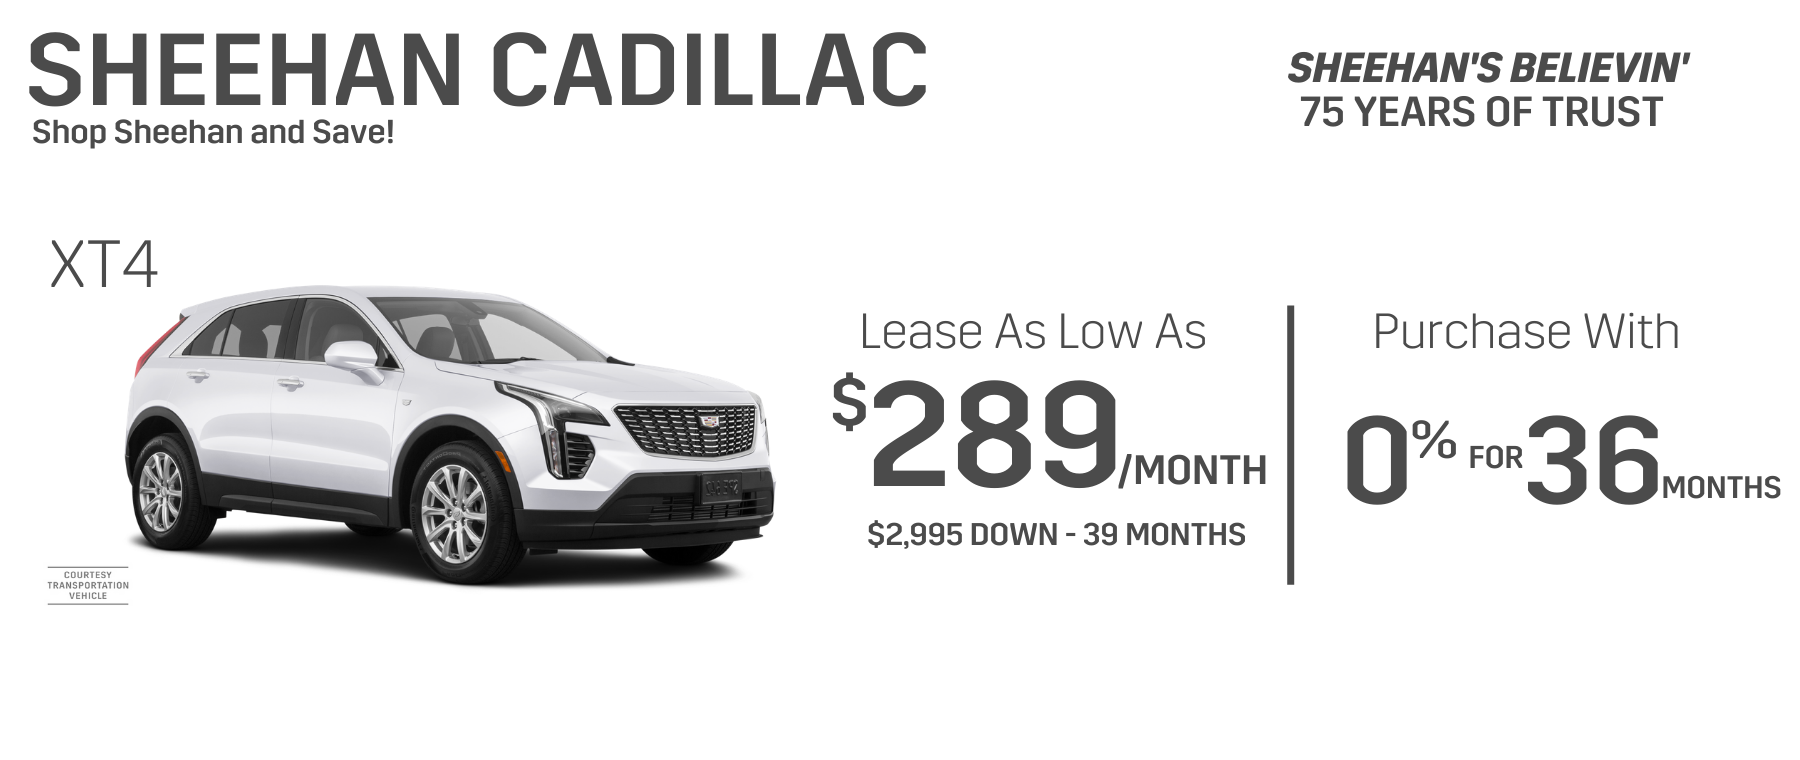 white xt4 lease purchase offer sheehan cadillac